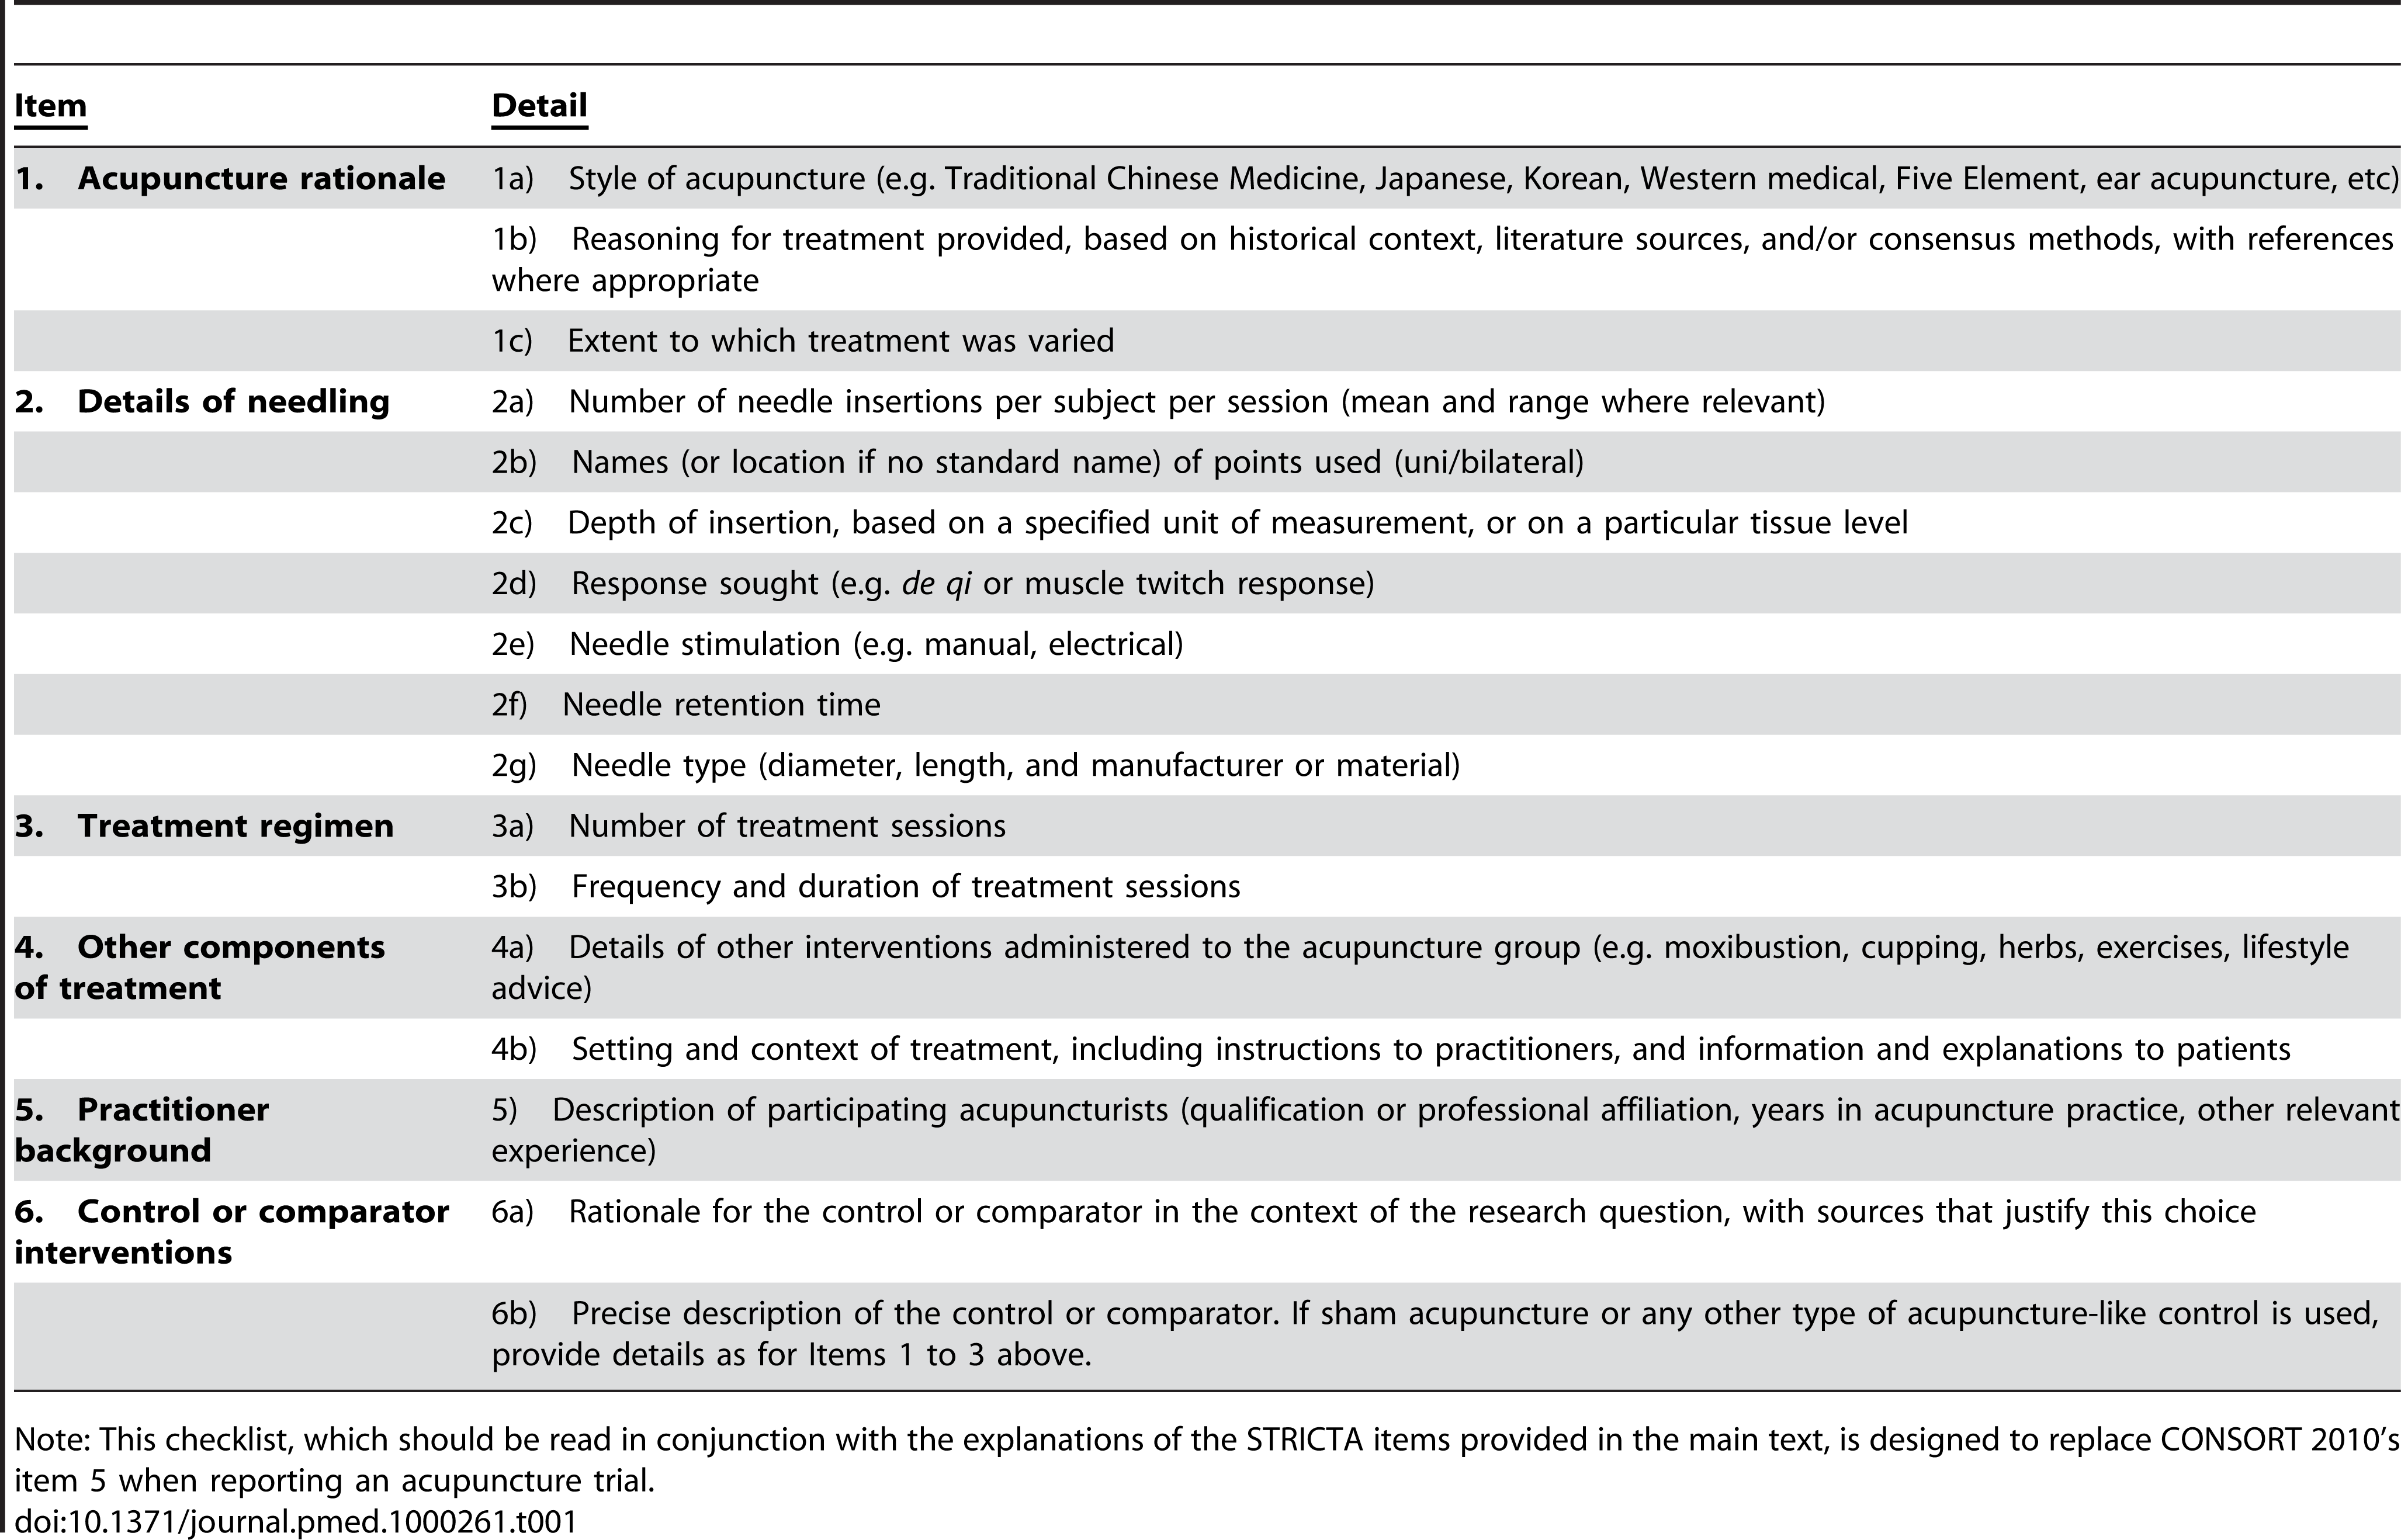 STRICTA 2010 checklist of information to include when reporting interventions in a clinical trial of acupuncture.